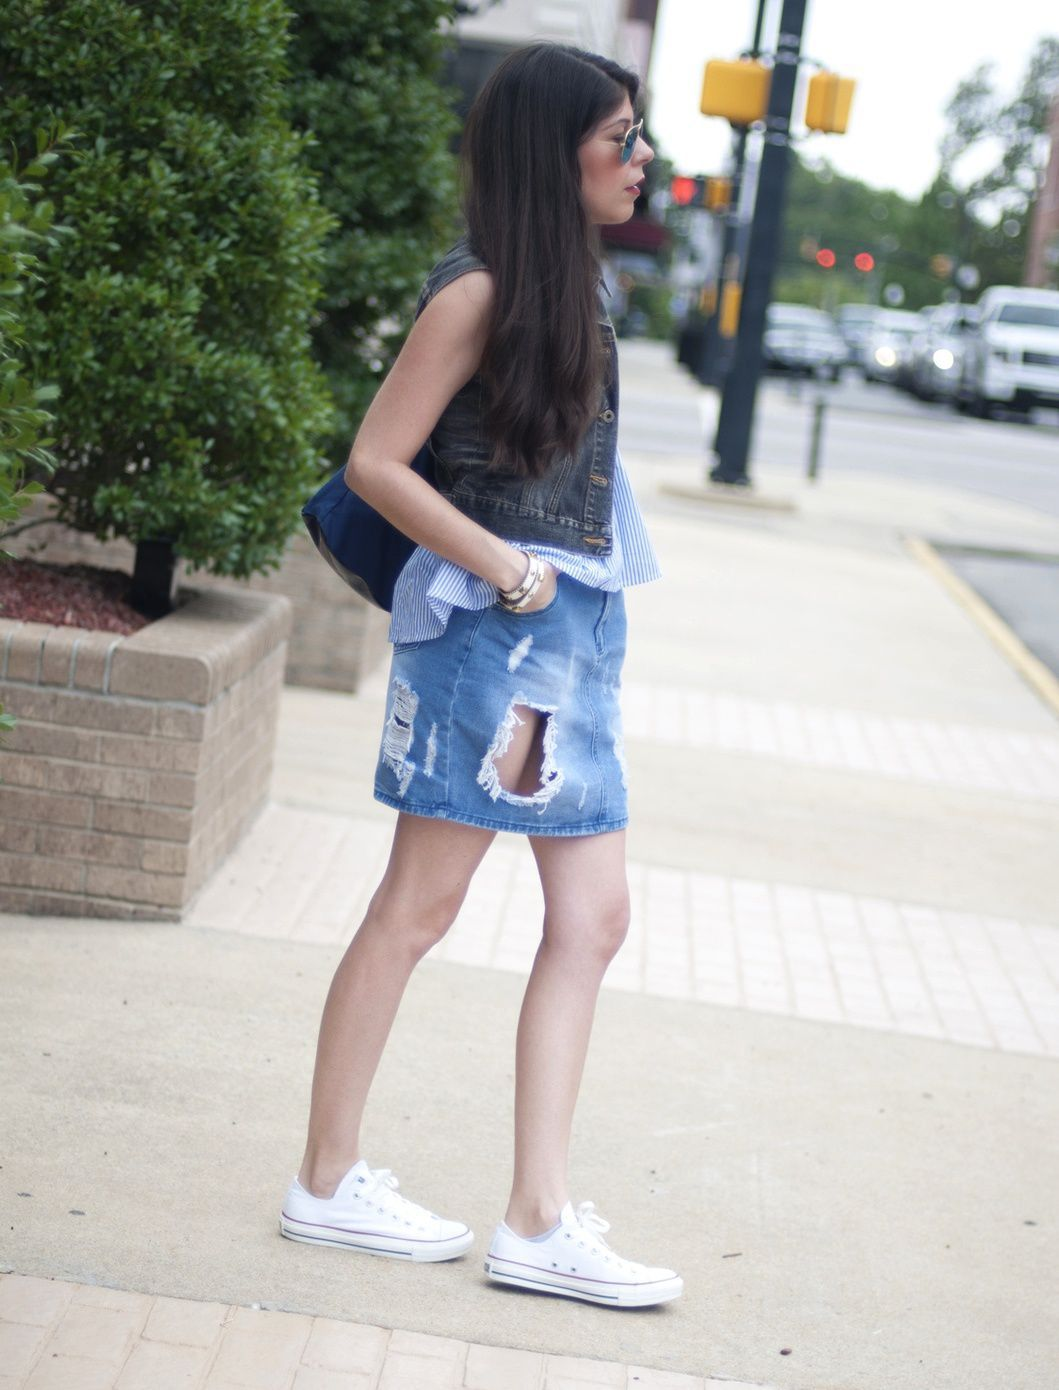 RIPPED DENIM REVAMP = OUTFITS